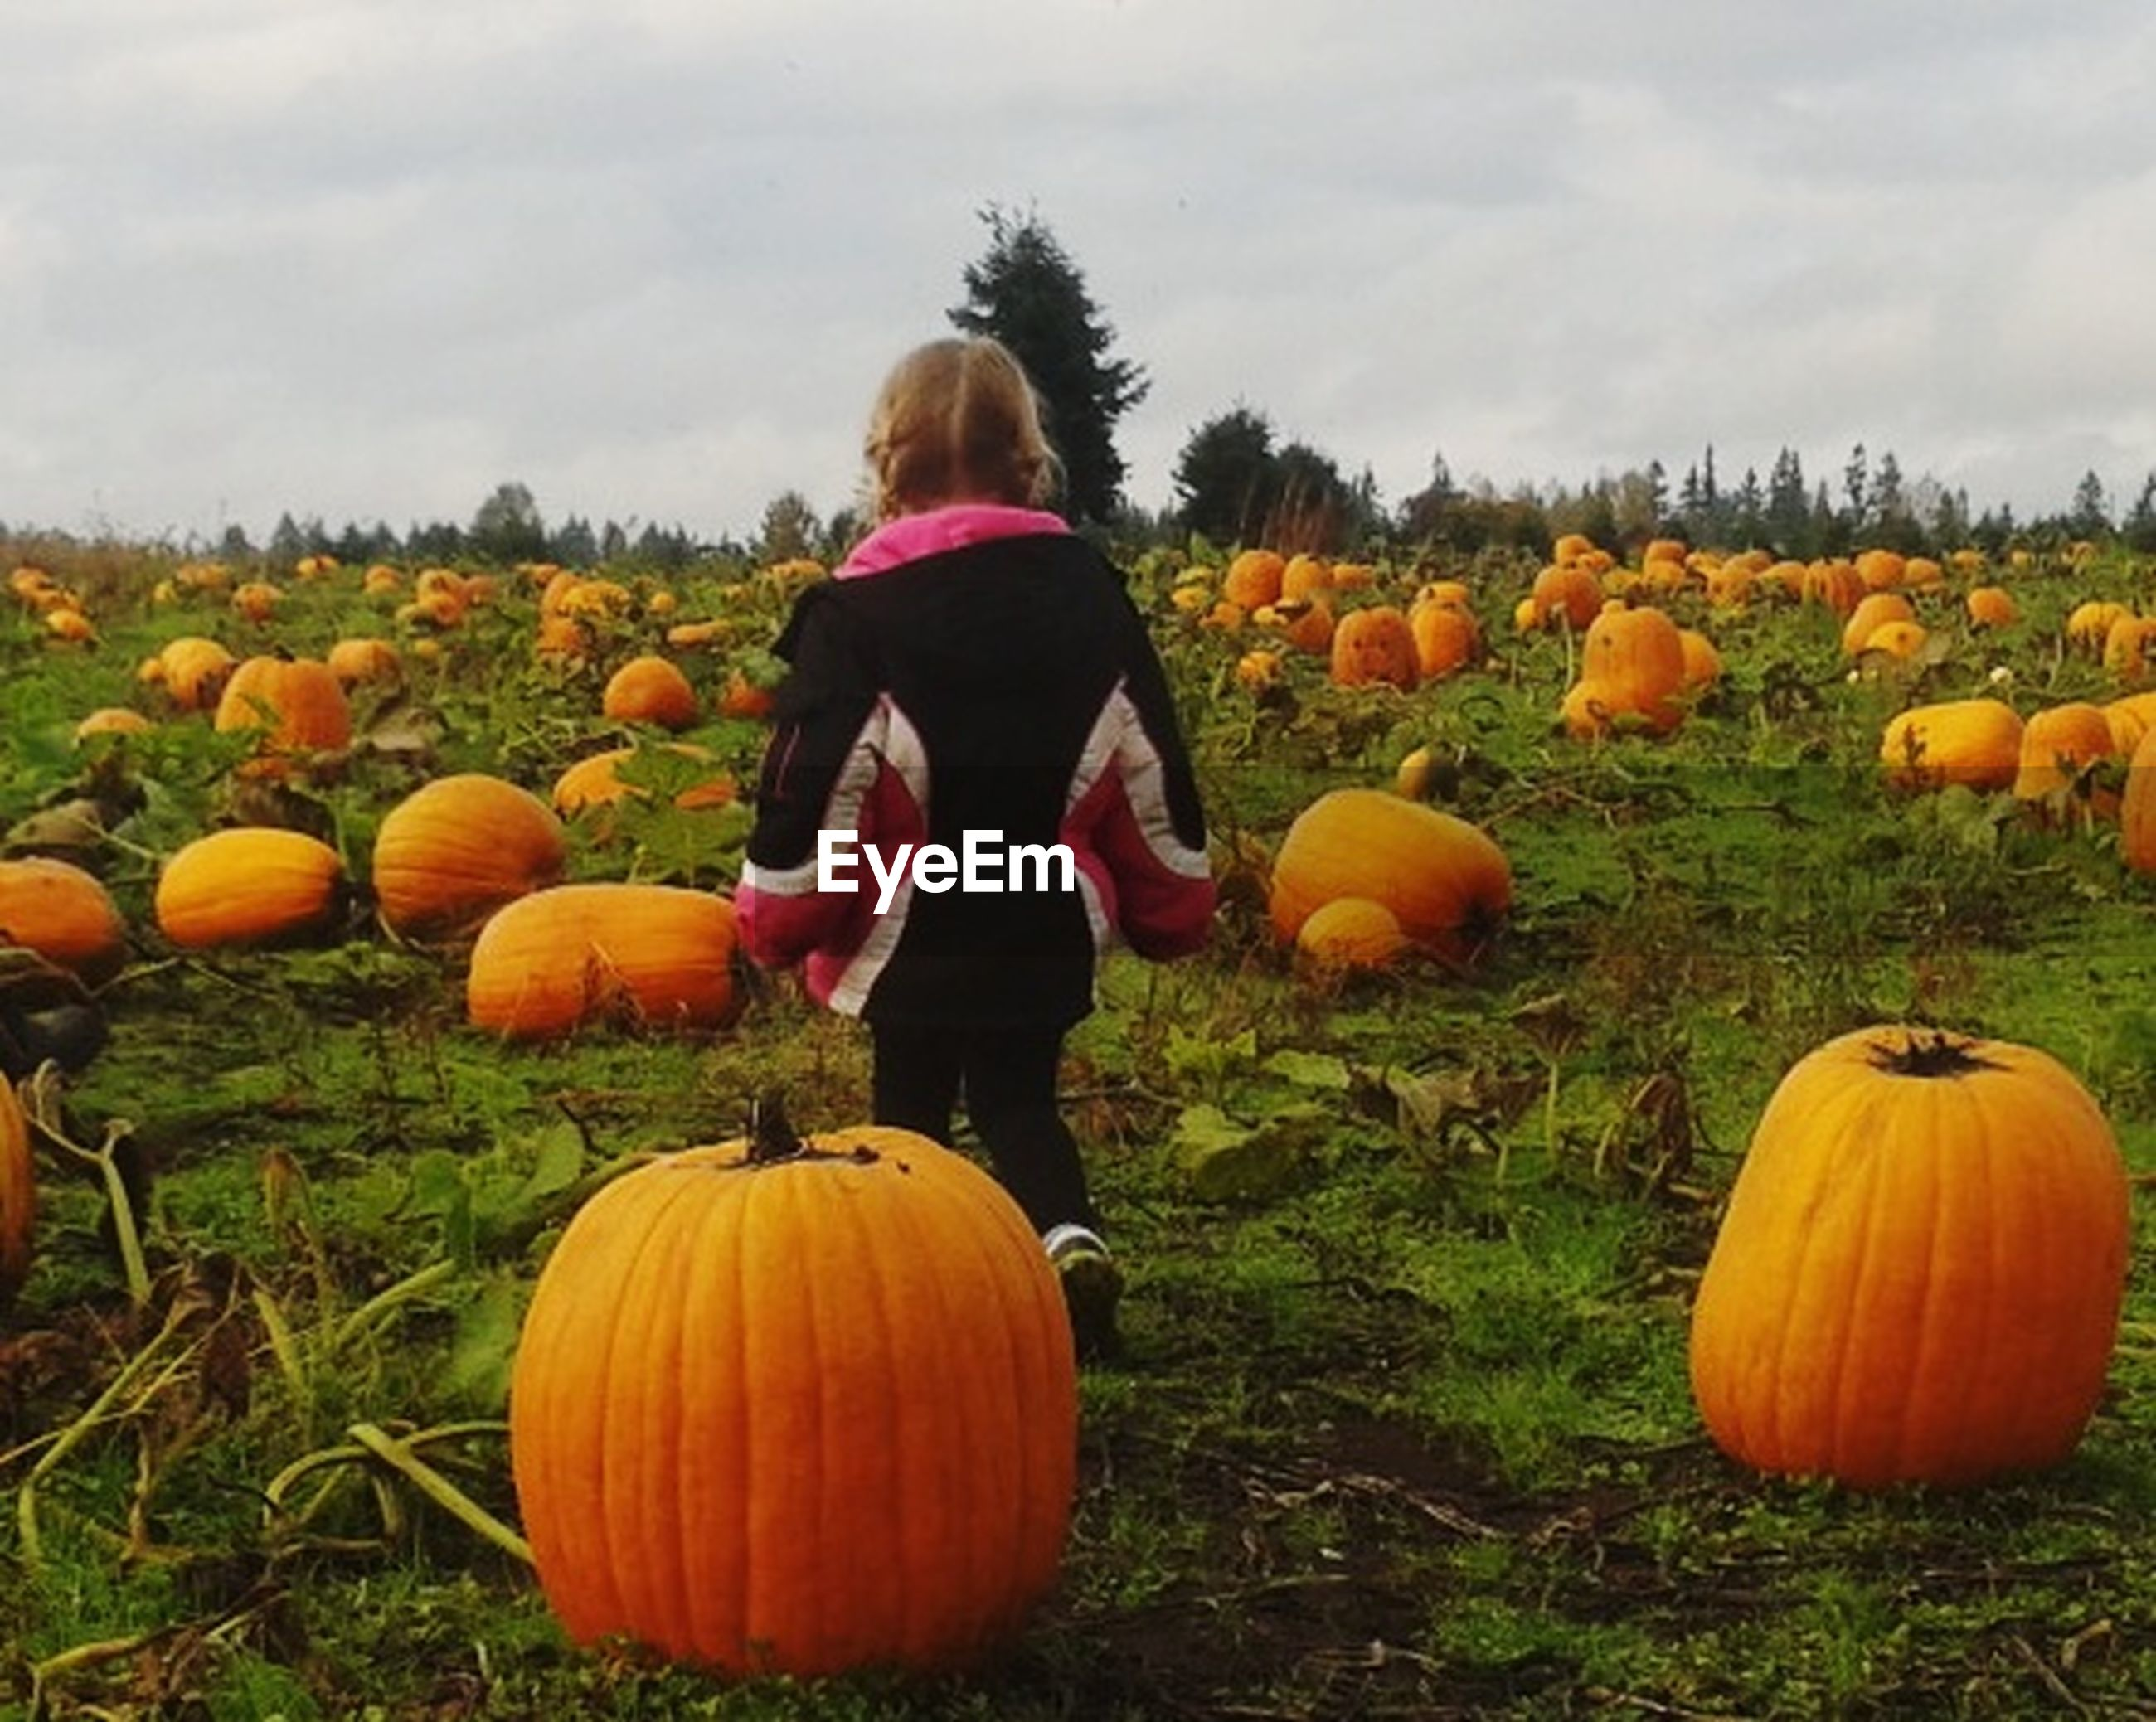 pumpkin, halloween, rear view, autumn, field, one person, vegetable, orange color, scarecrow, jack o' lantern, cloud - sky, childhood, sky, agriculture, children only, choice, day, celebration, one girl only, nature, outdoors, grass, growth, standing, holiday - event, people, rural scene, child, girls, tree, multi colored, freshness, real people, beauty in nature, young adult, jack o lantern, adult, witch